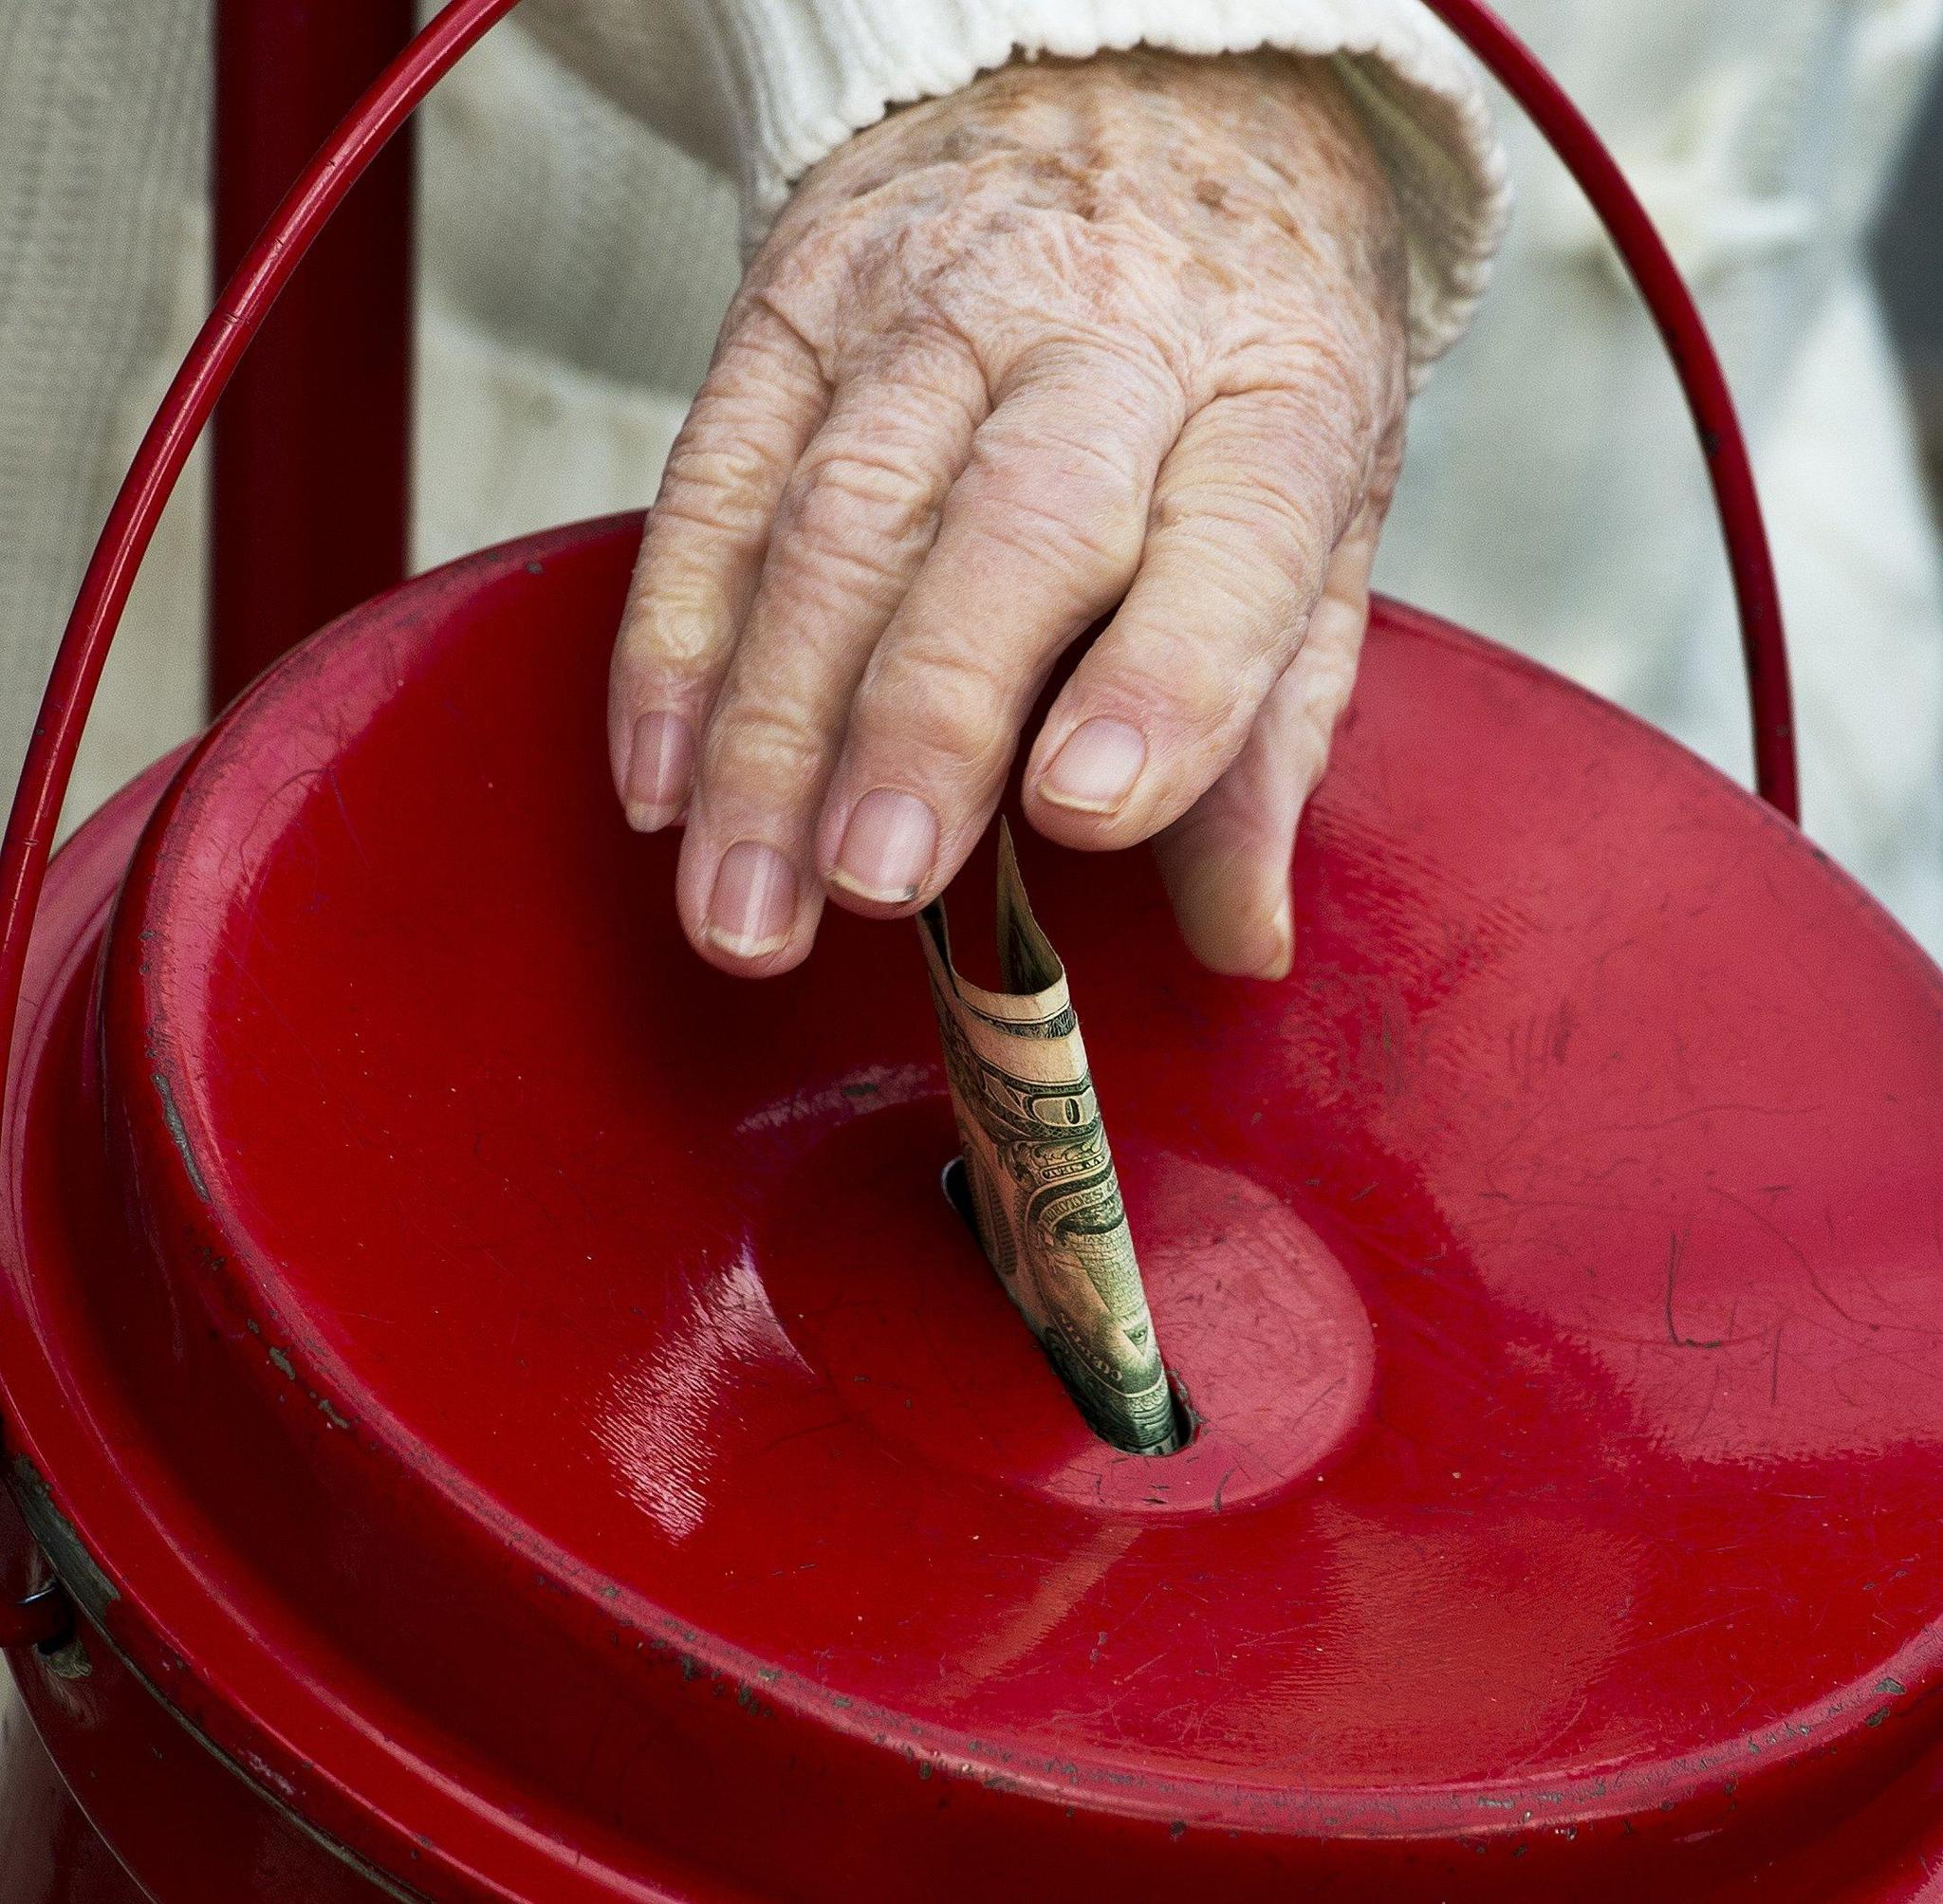 616af8046ea Davich  Does Salvation Army s red kettle campaign ring charitable bells for  you  - Post-Tribune